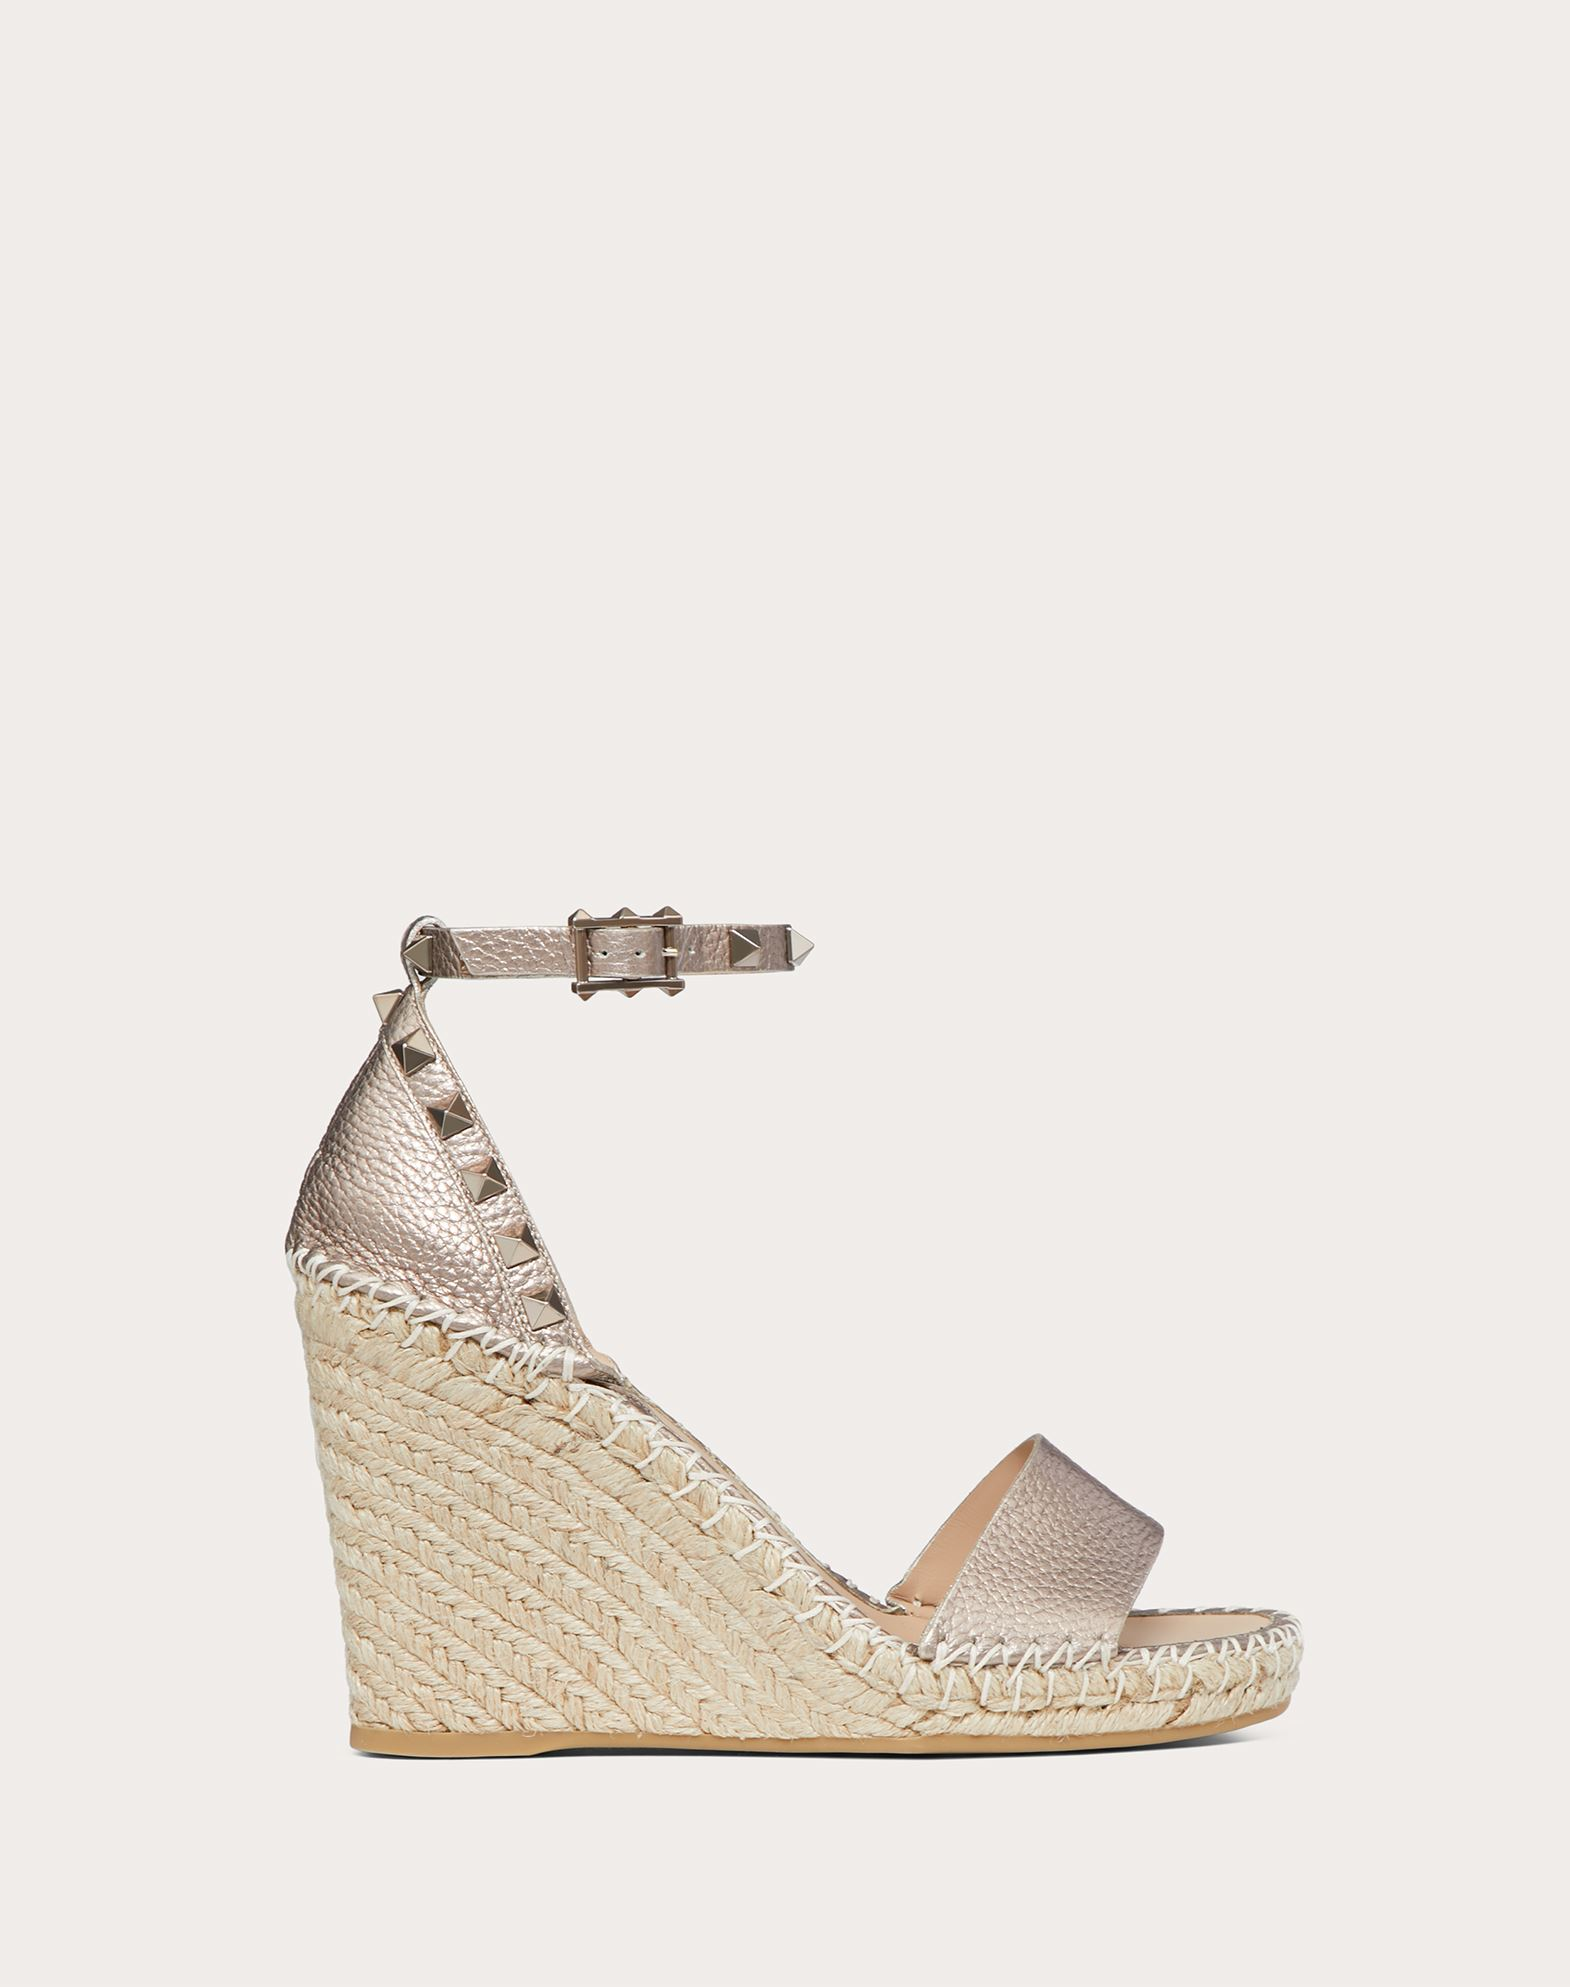 Rockstud Double Metallic Grainy Calfskin Leather Wedge Sandal 105 mm